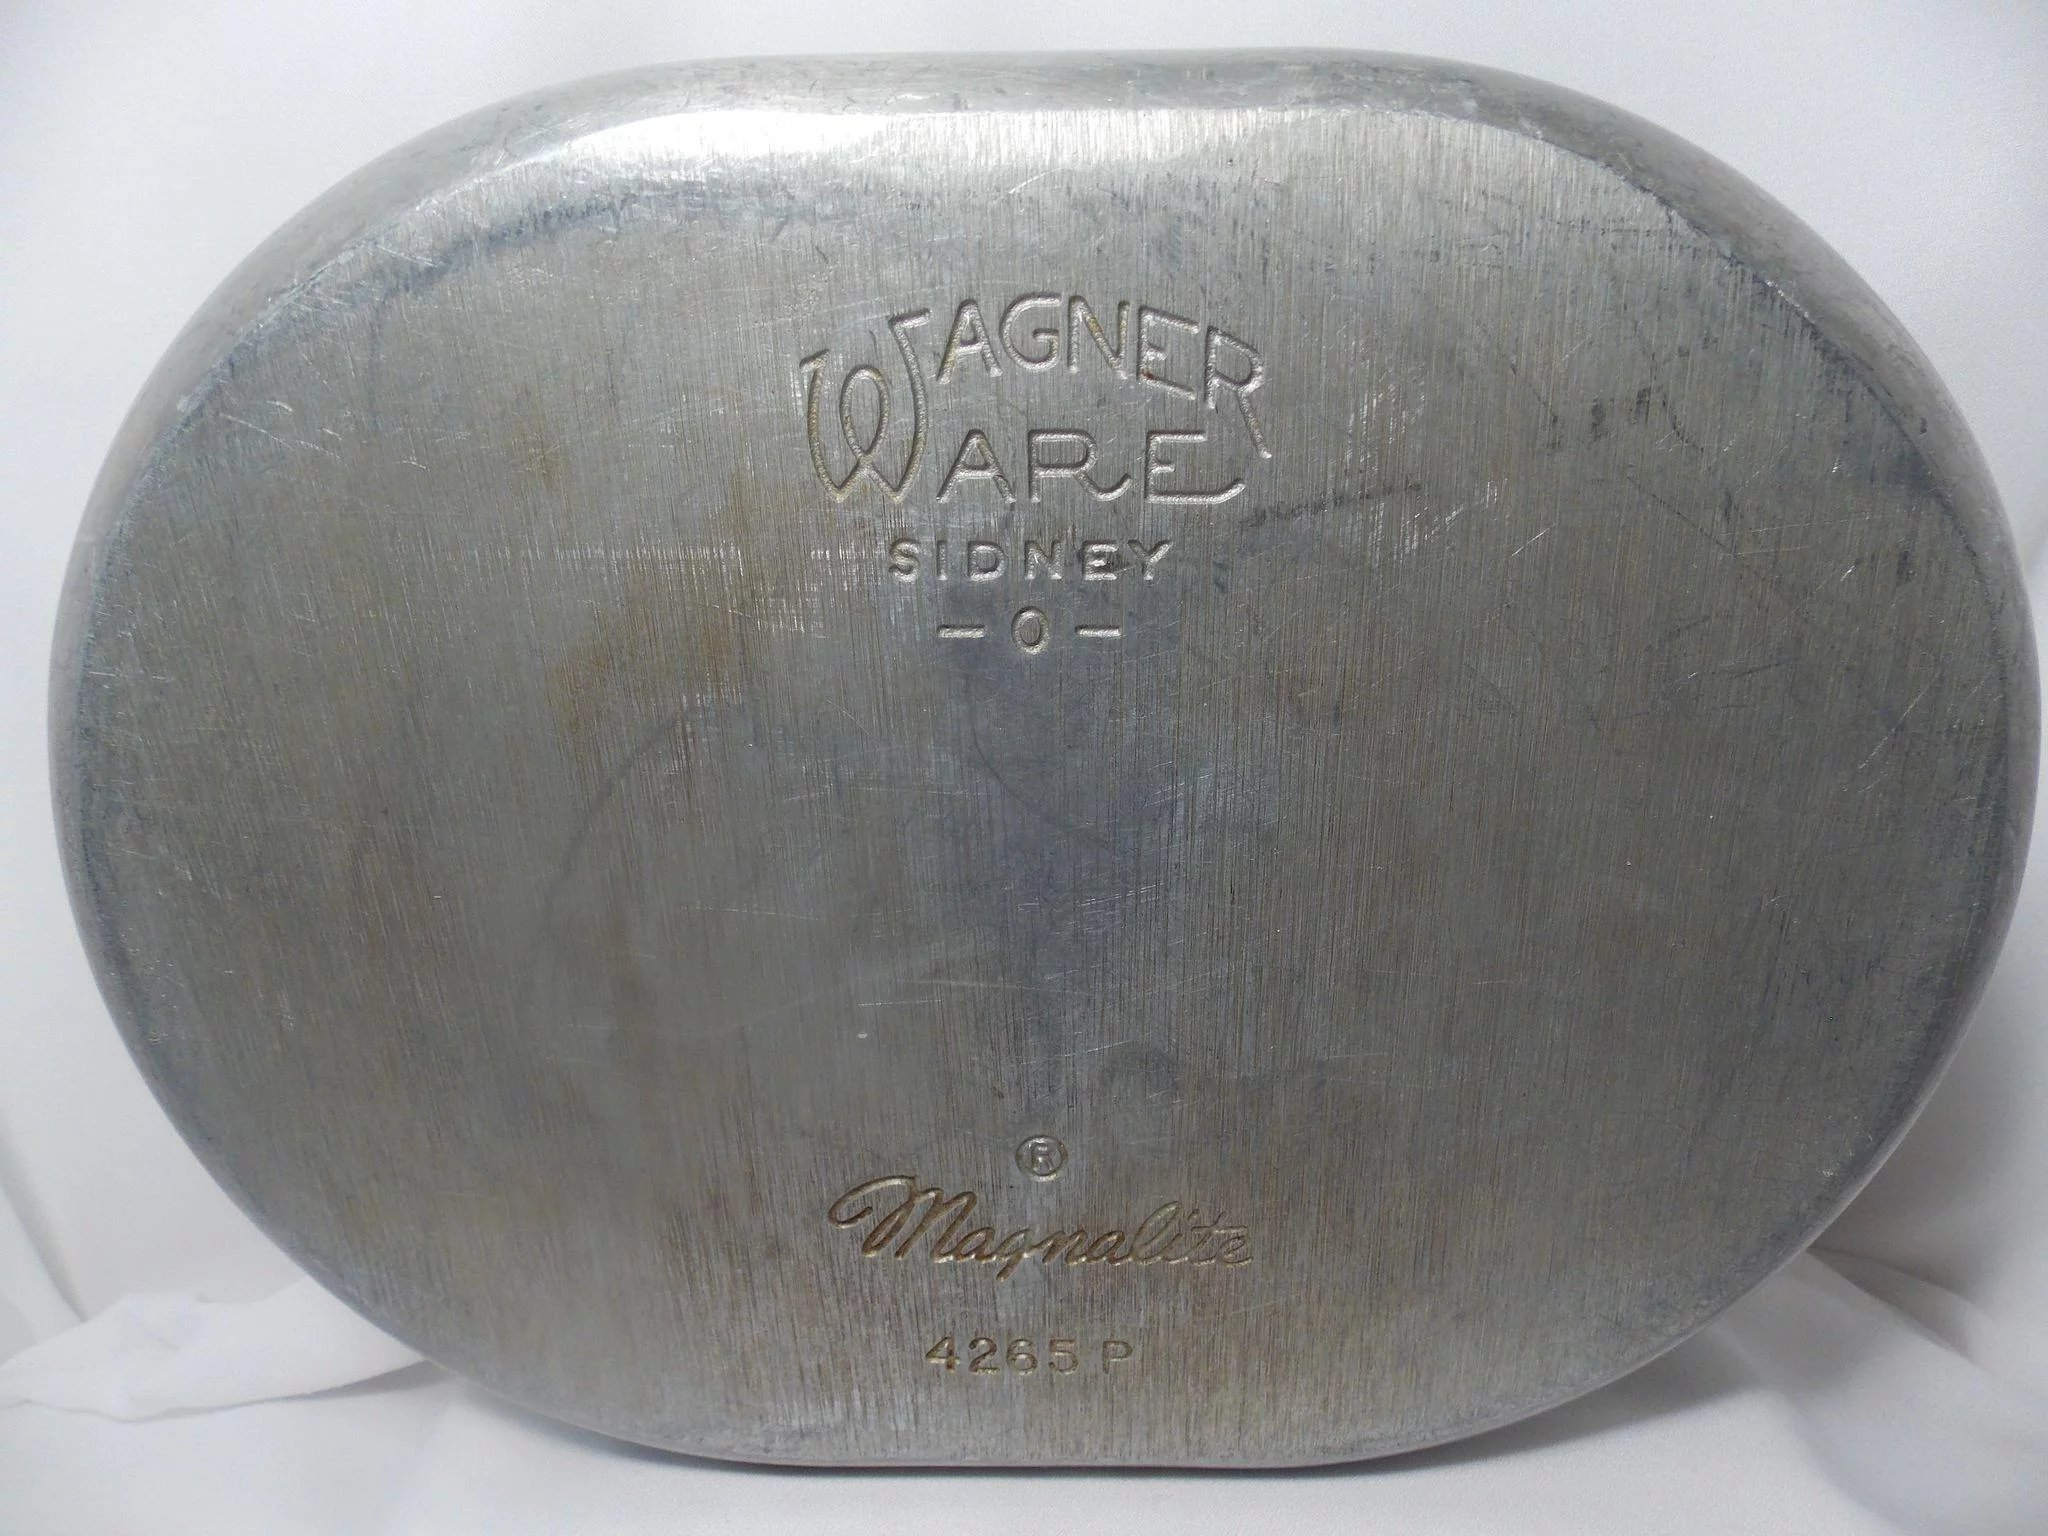 Vintage wagner ware magnalite 4265 p roaster pan with lid click to expand